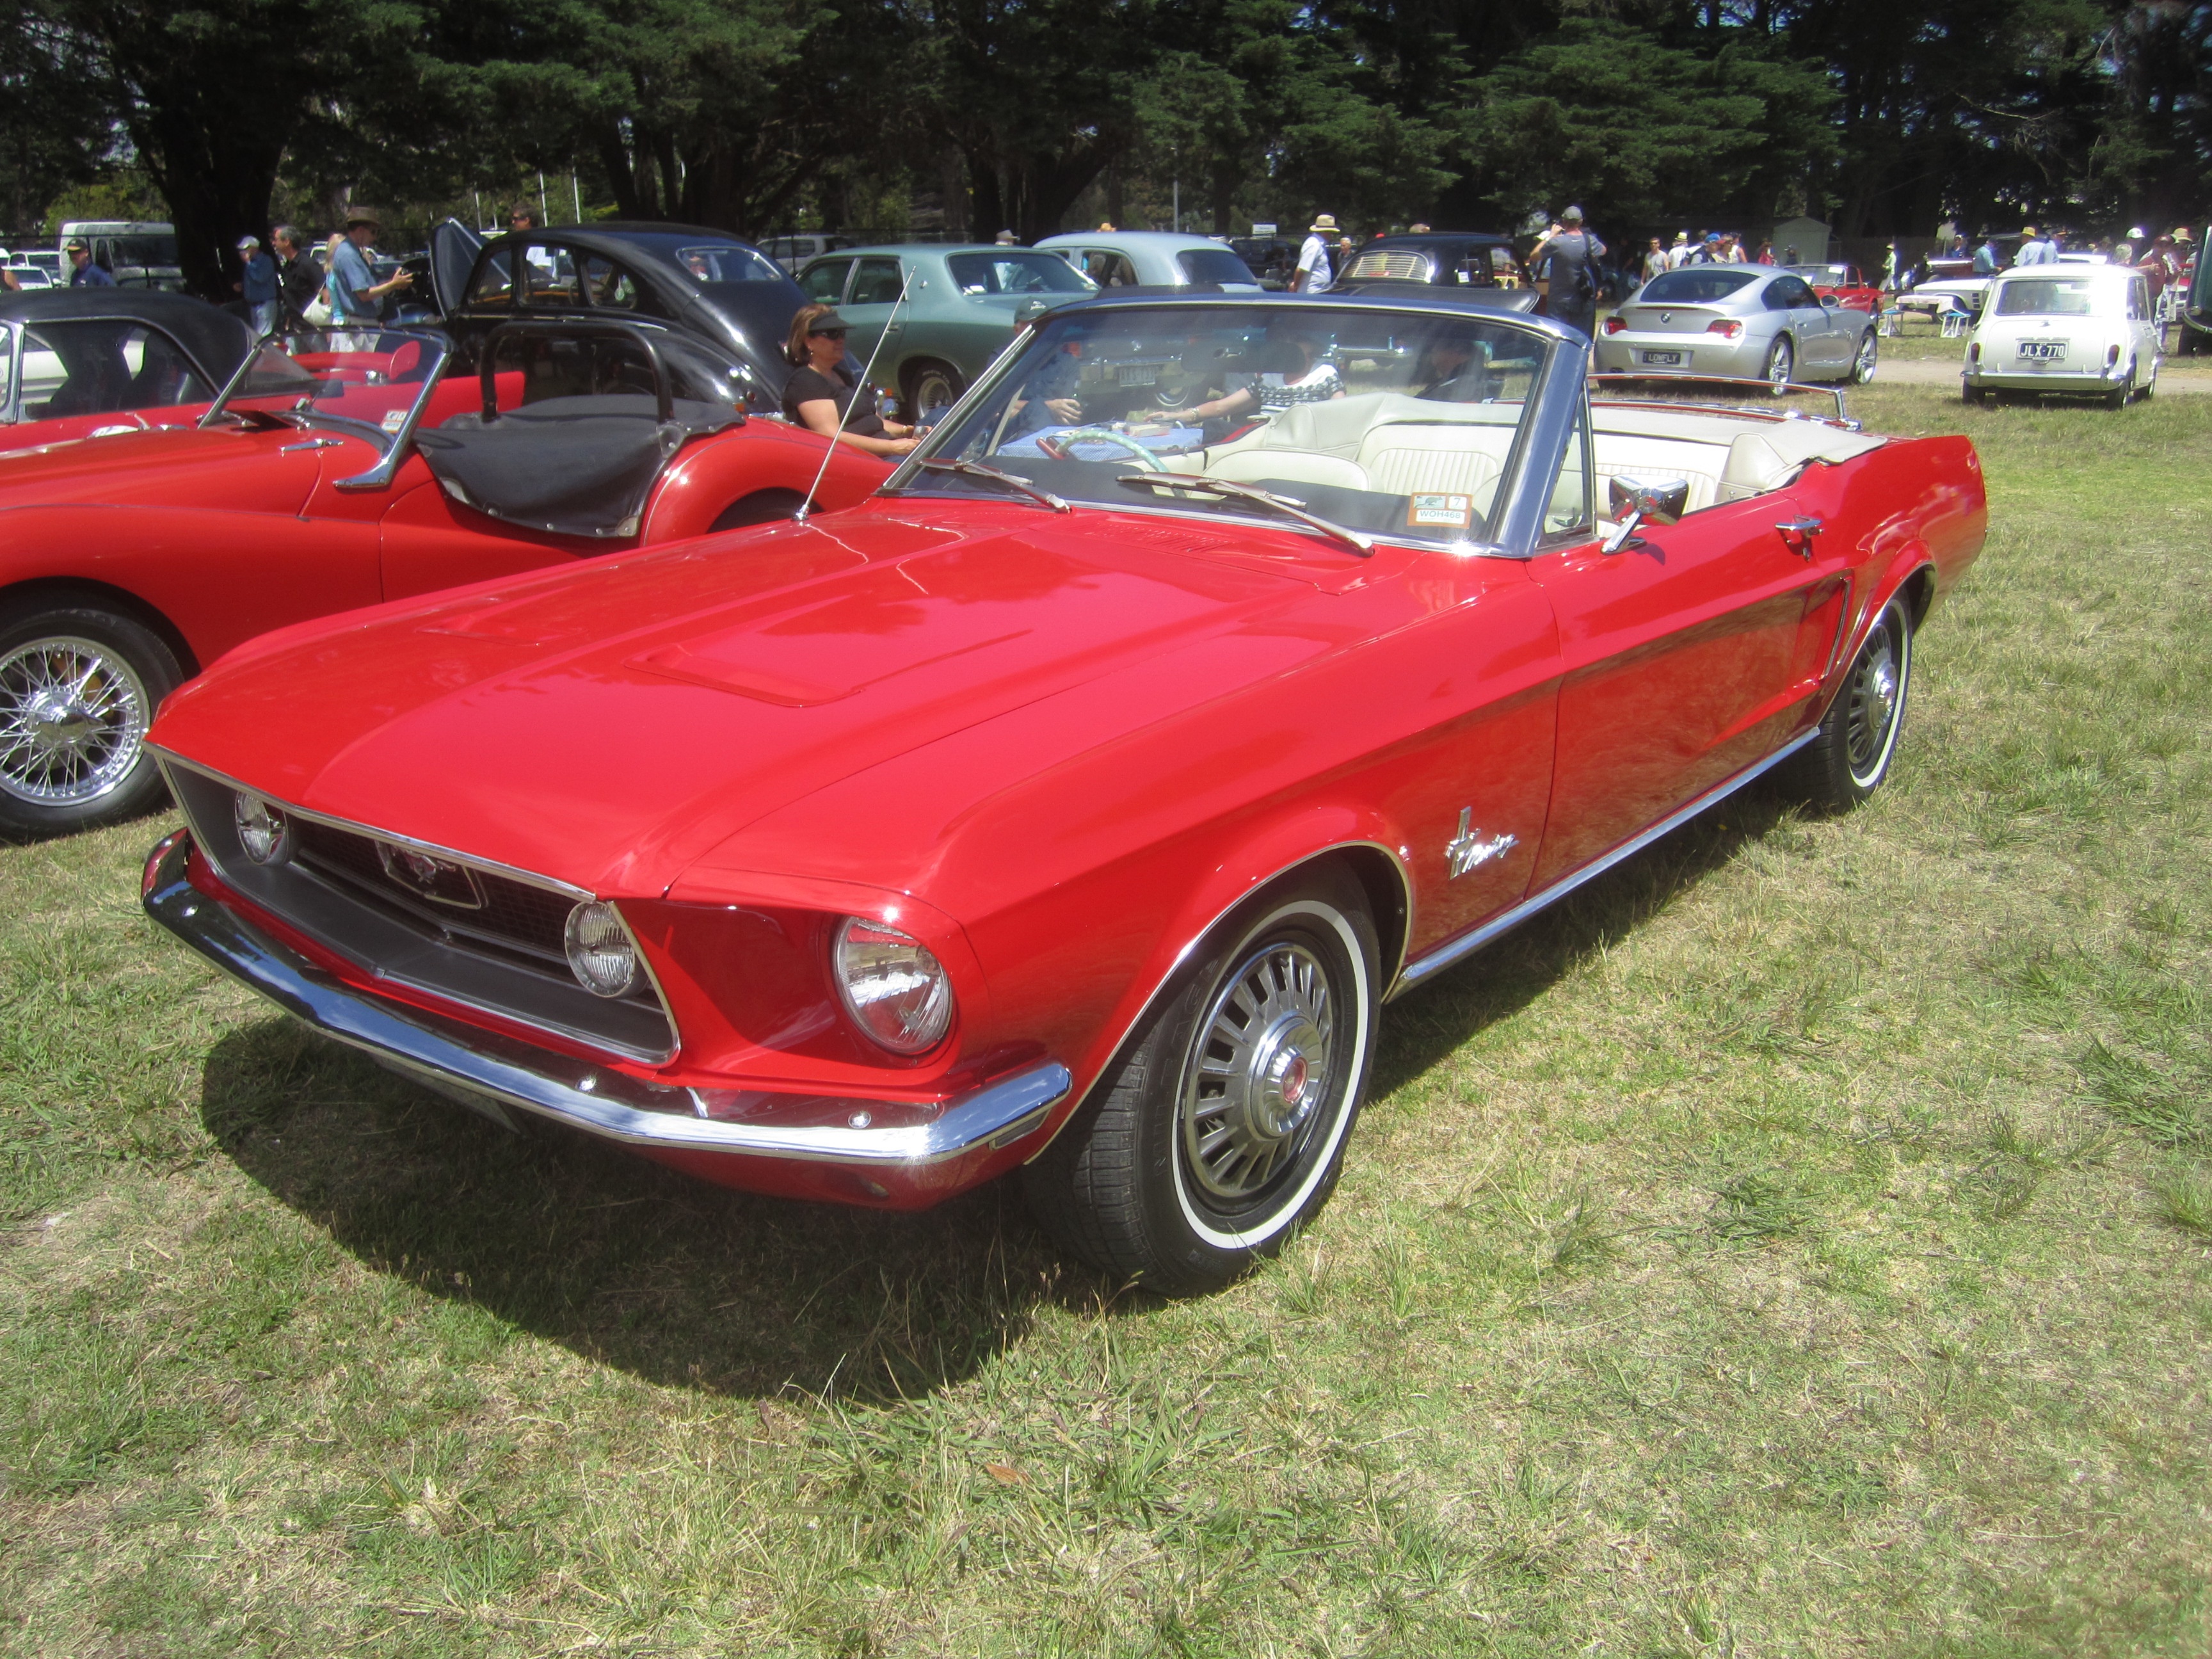 File:1968 Ford Mustang Convertible (2).jpg